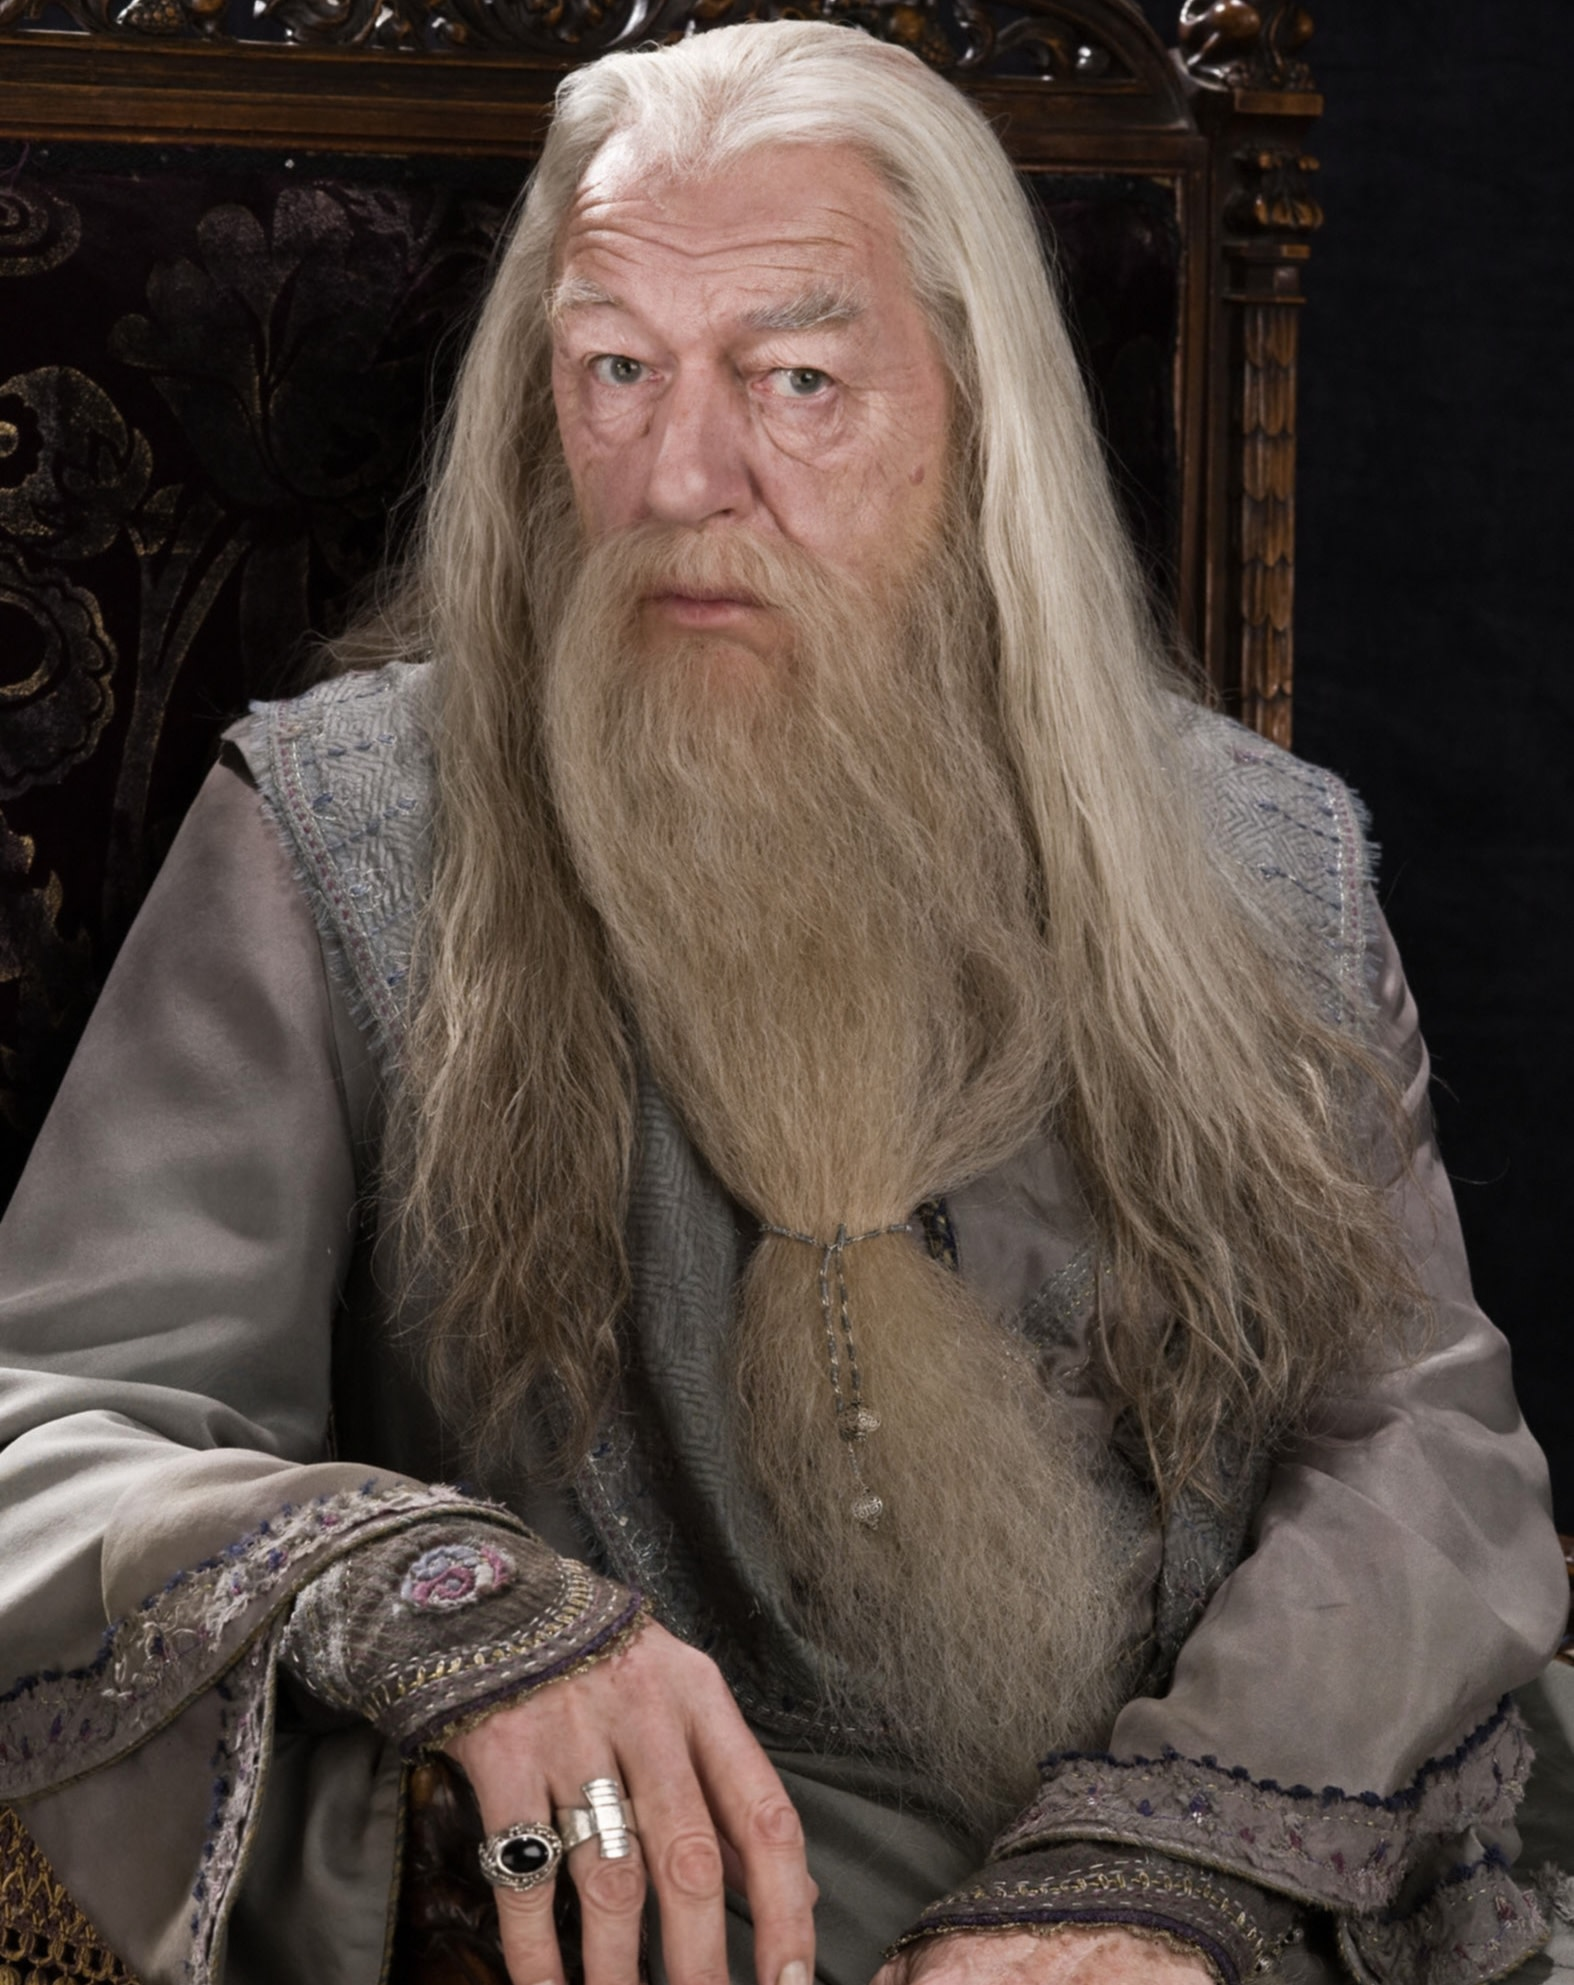 Things you may not have noticed about… Albus Dumbledore ...